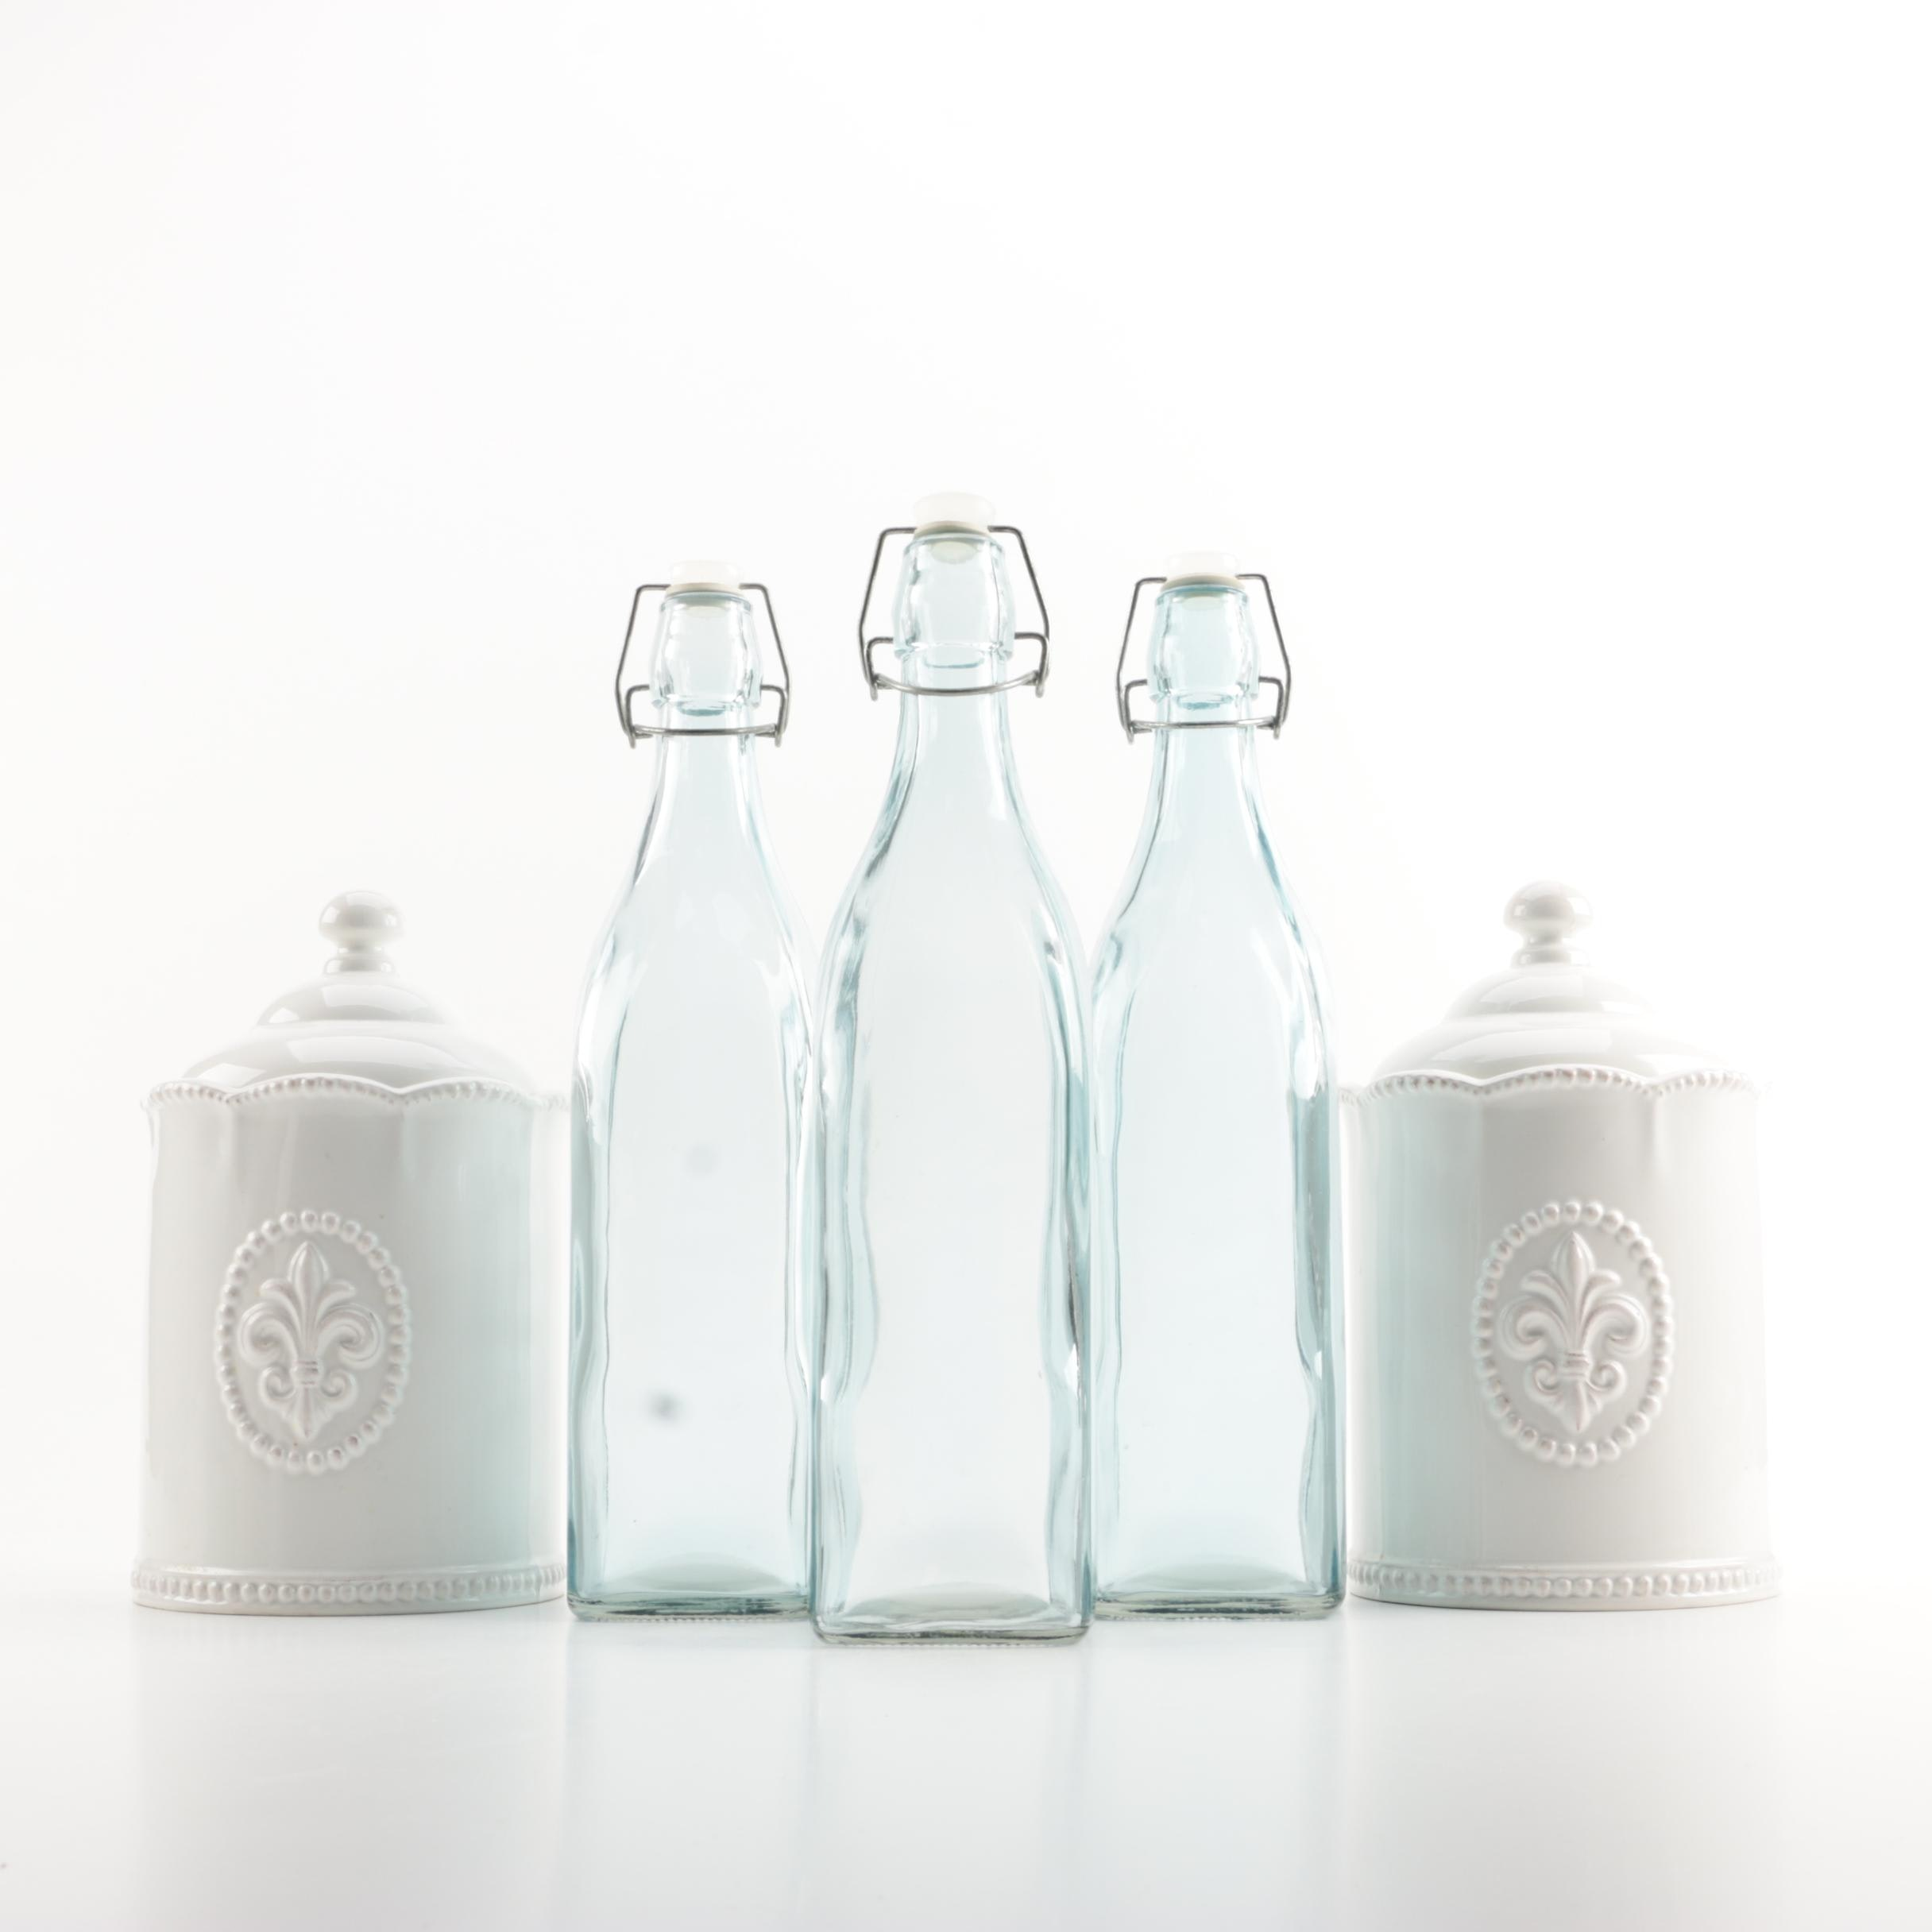 Ivory Glazed Ceramic Canisters and Clear Glass Bottles